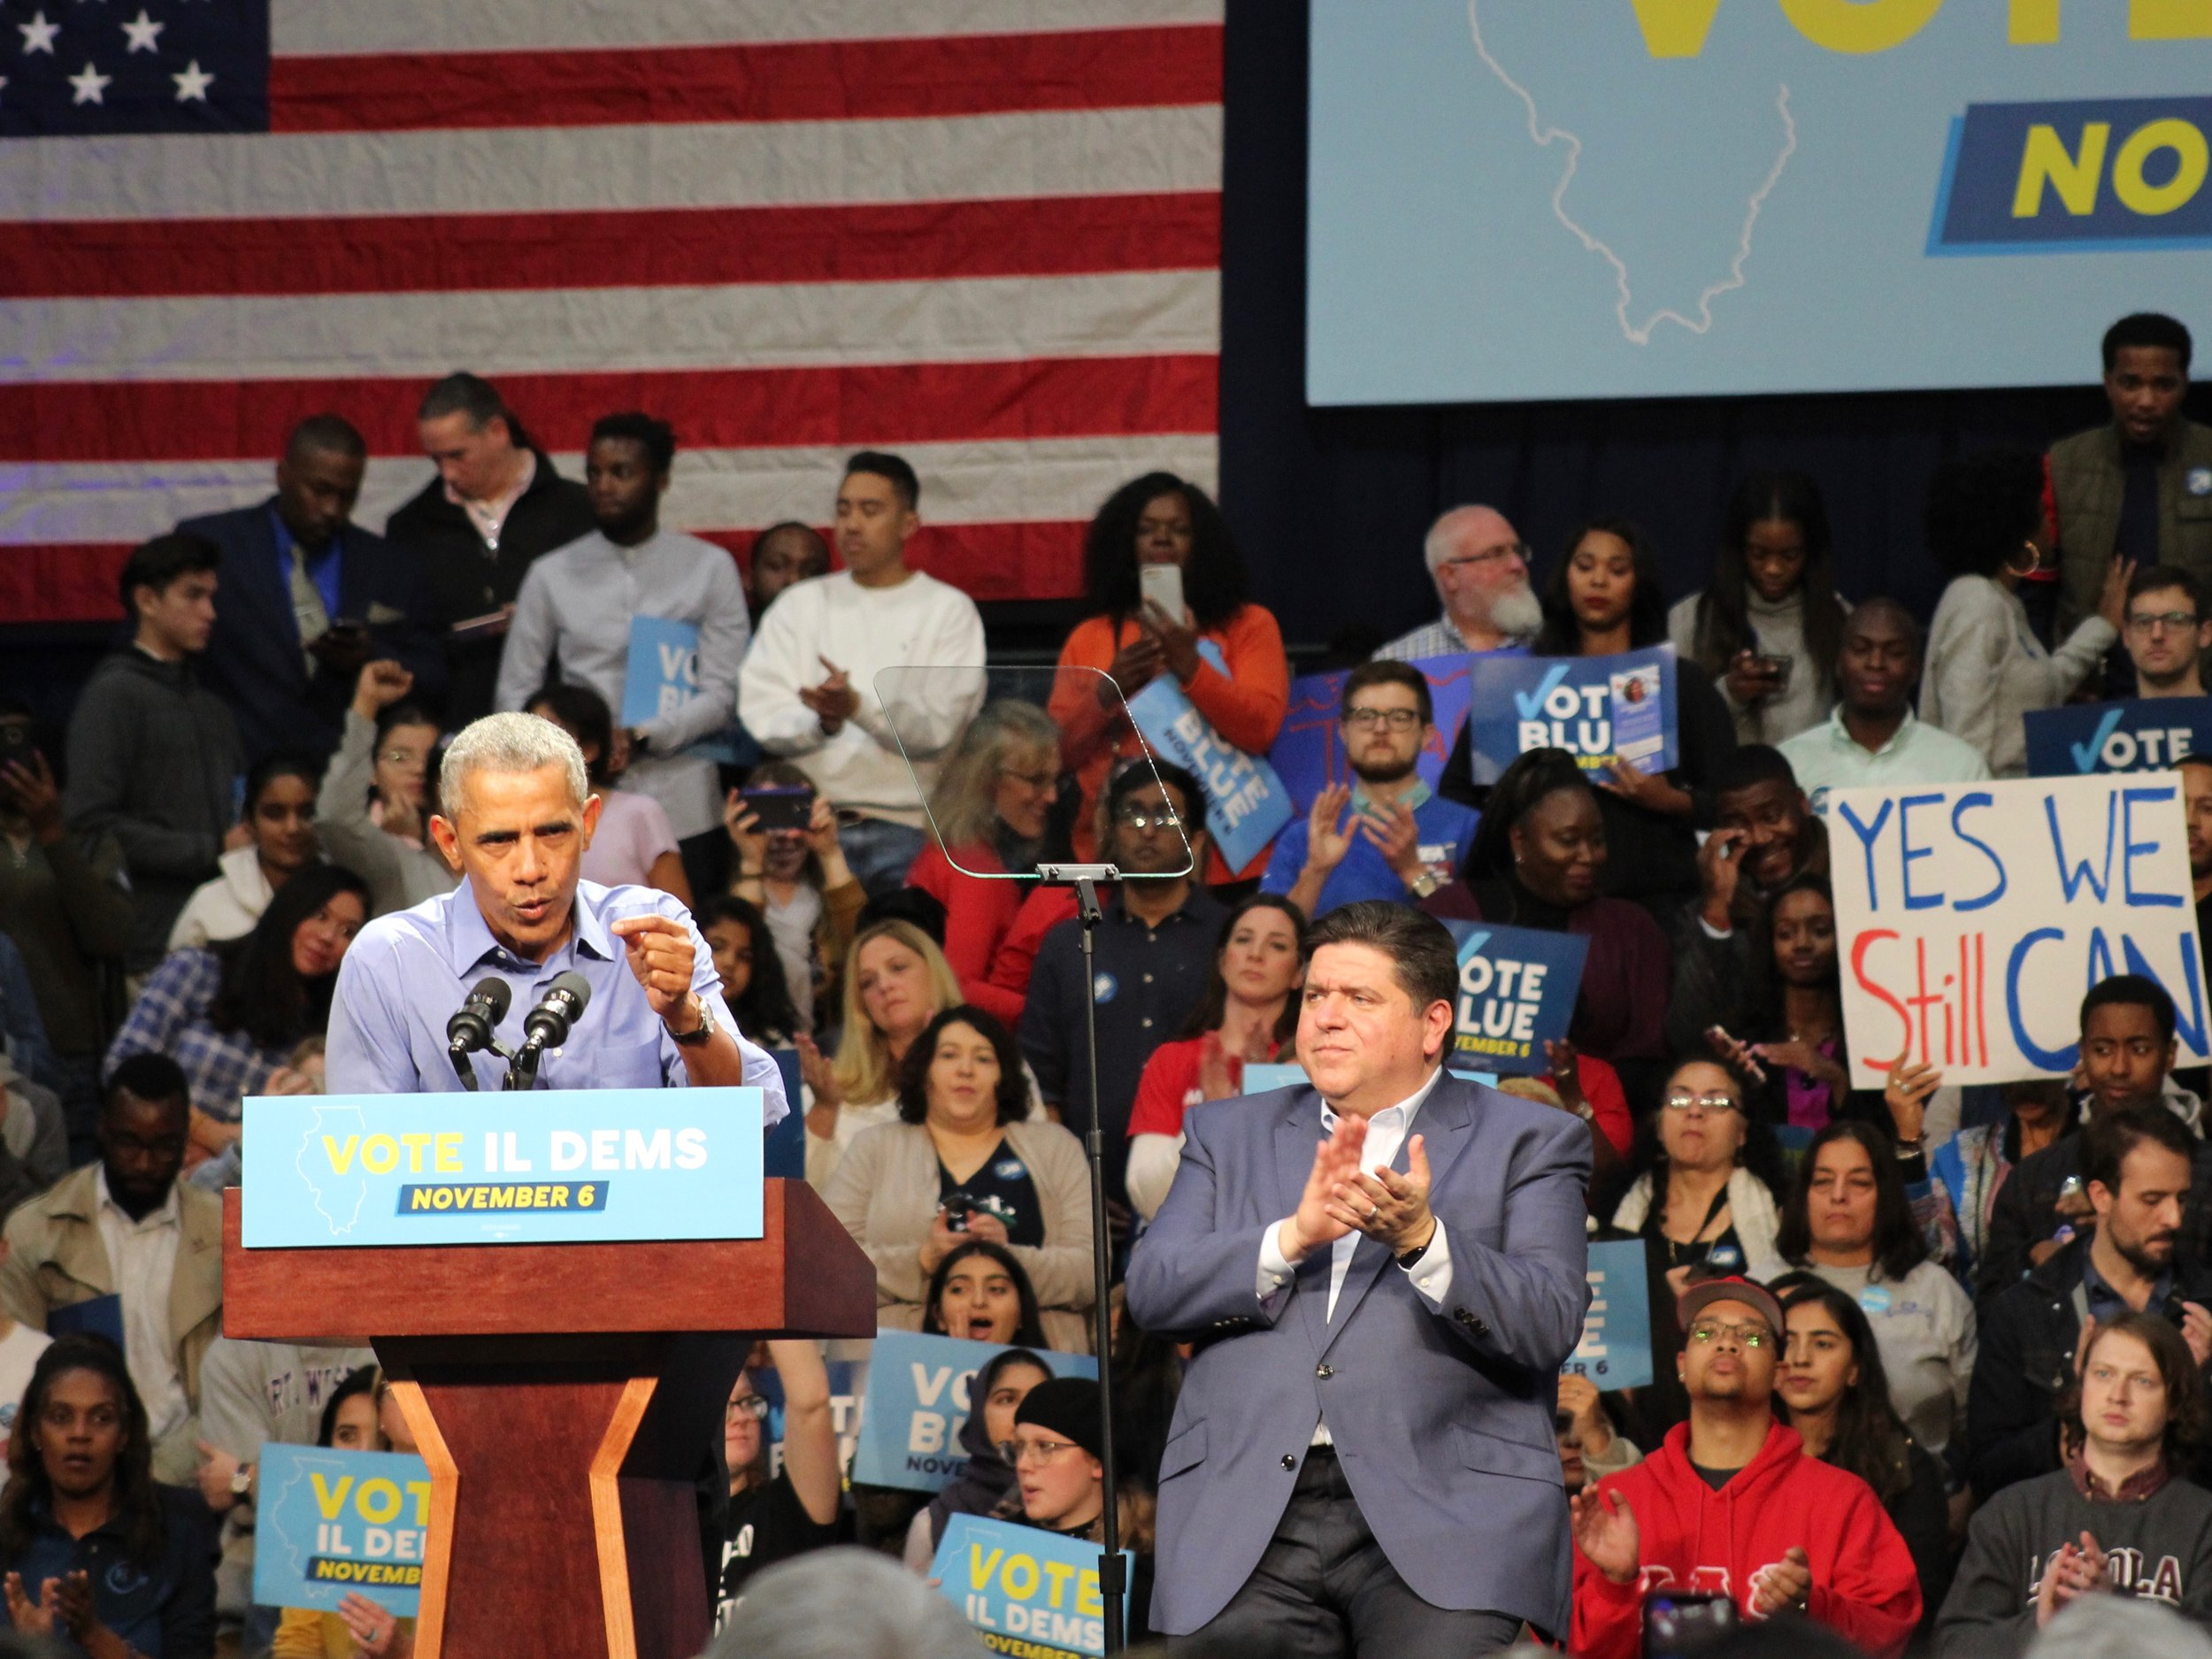 """""""When you participate in the political process, you can be a check on bad behavior,"""" said President Barack Obama. """"When you vote, you can choose hope over fear. You are part of the process of shifting the course of this country."""" (One Illinois/Ted Cox)"""